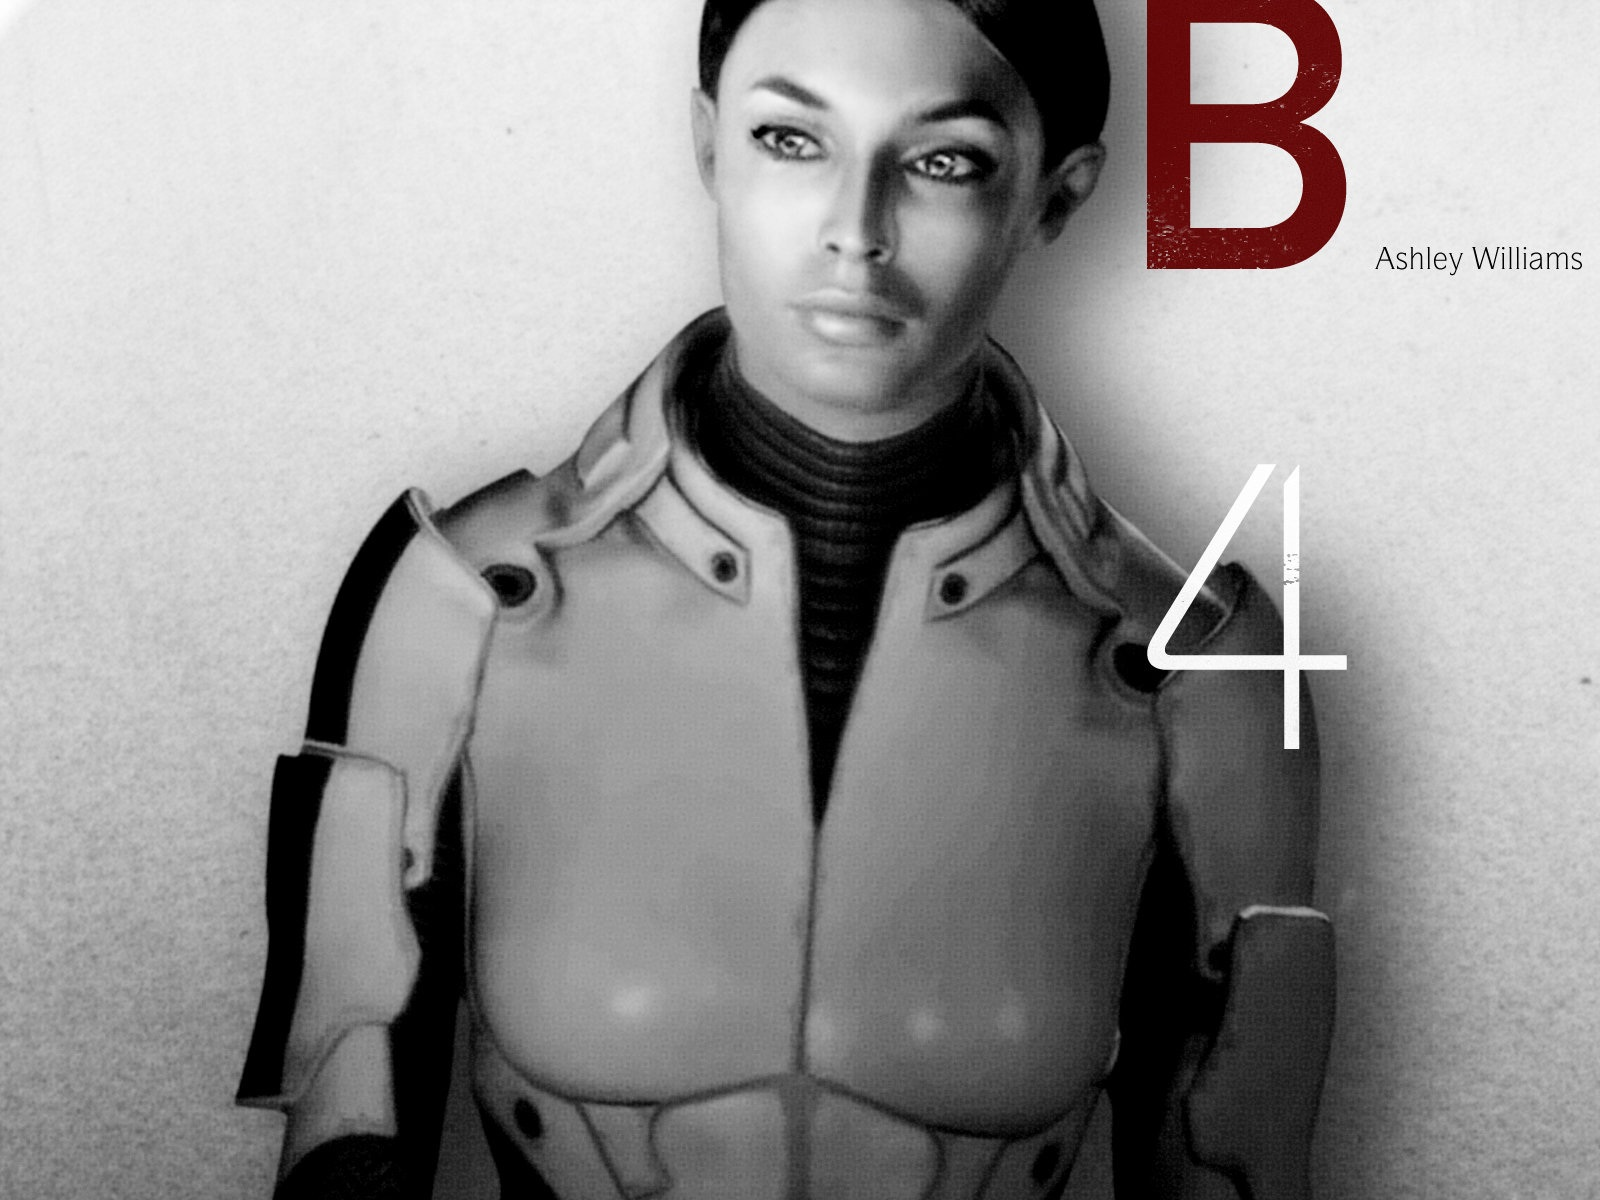 Ashley Williams Mass Effect Rp Wallpaper 33419297 Fanpop